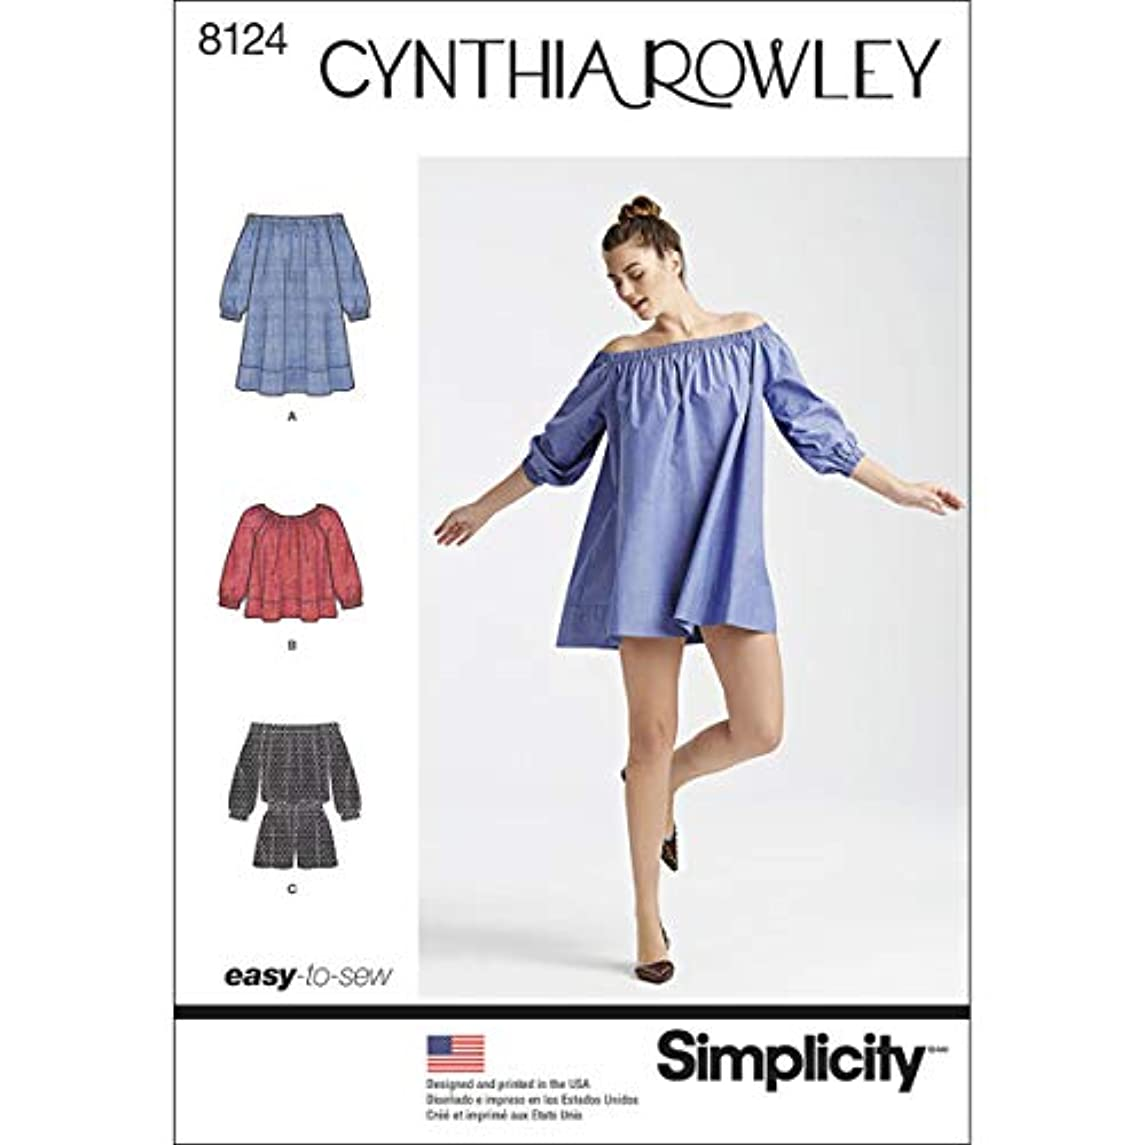 Simplicity 8124 Women's Romper Dress and Top Sewing Patterns by Cynthia Rowley, Sizes XS-XL